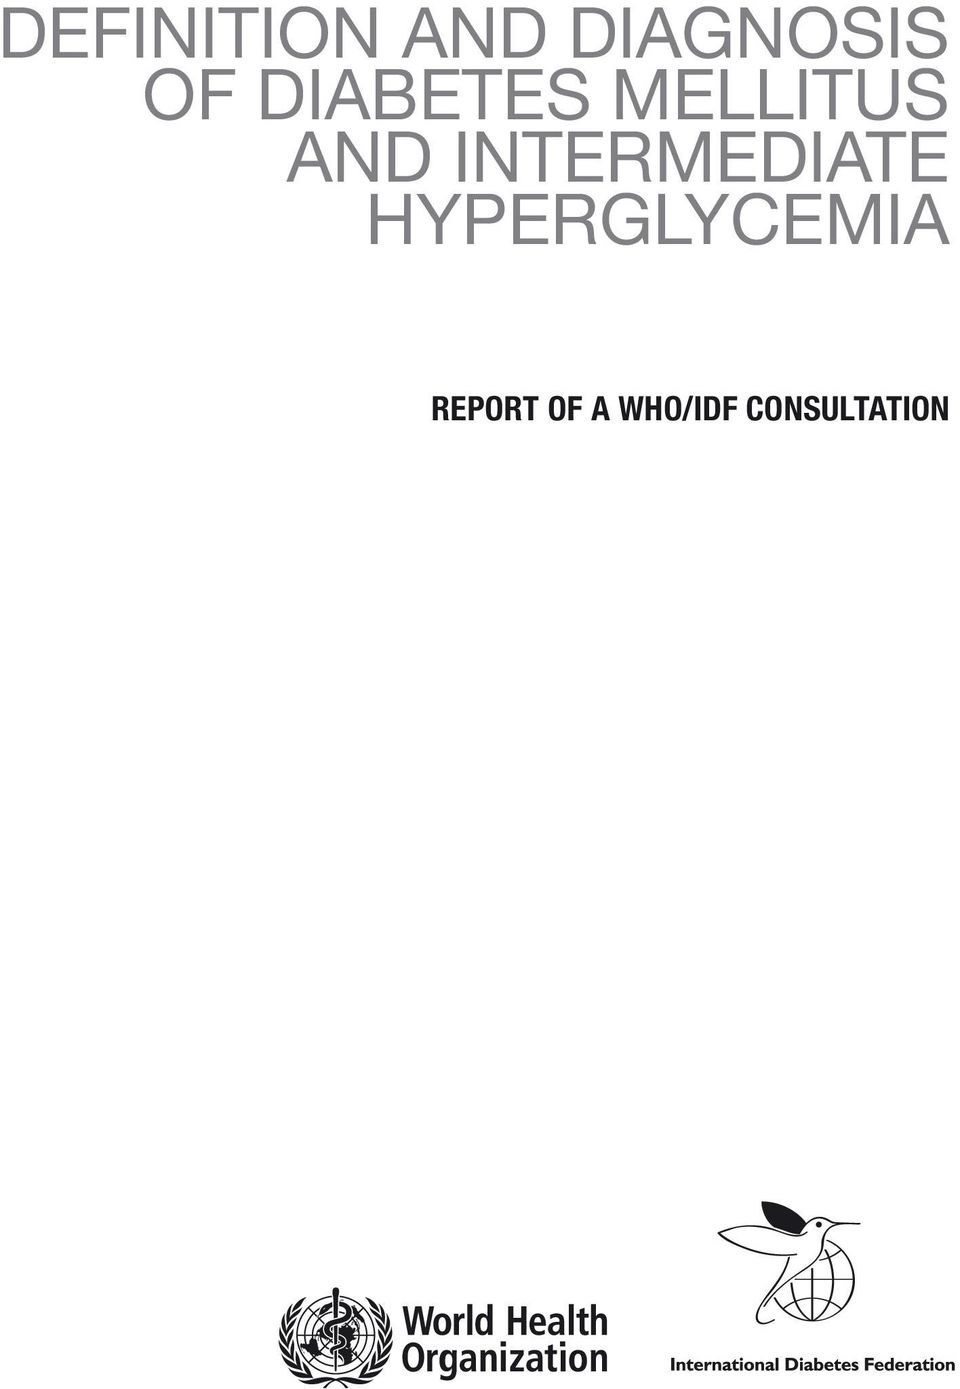 intermediate hyperglycemia